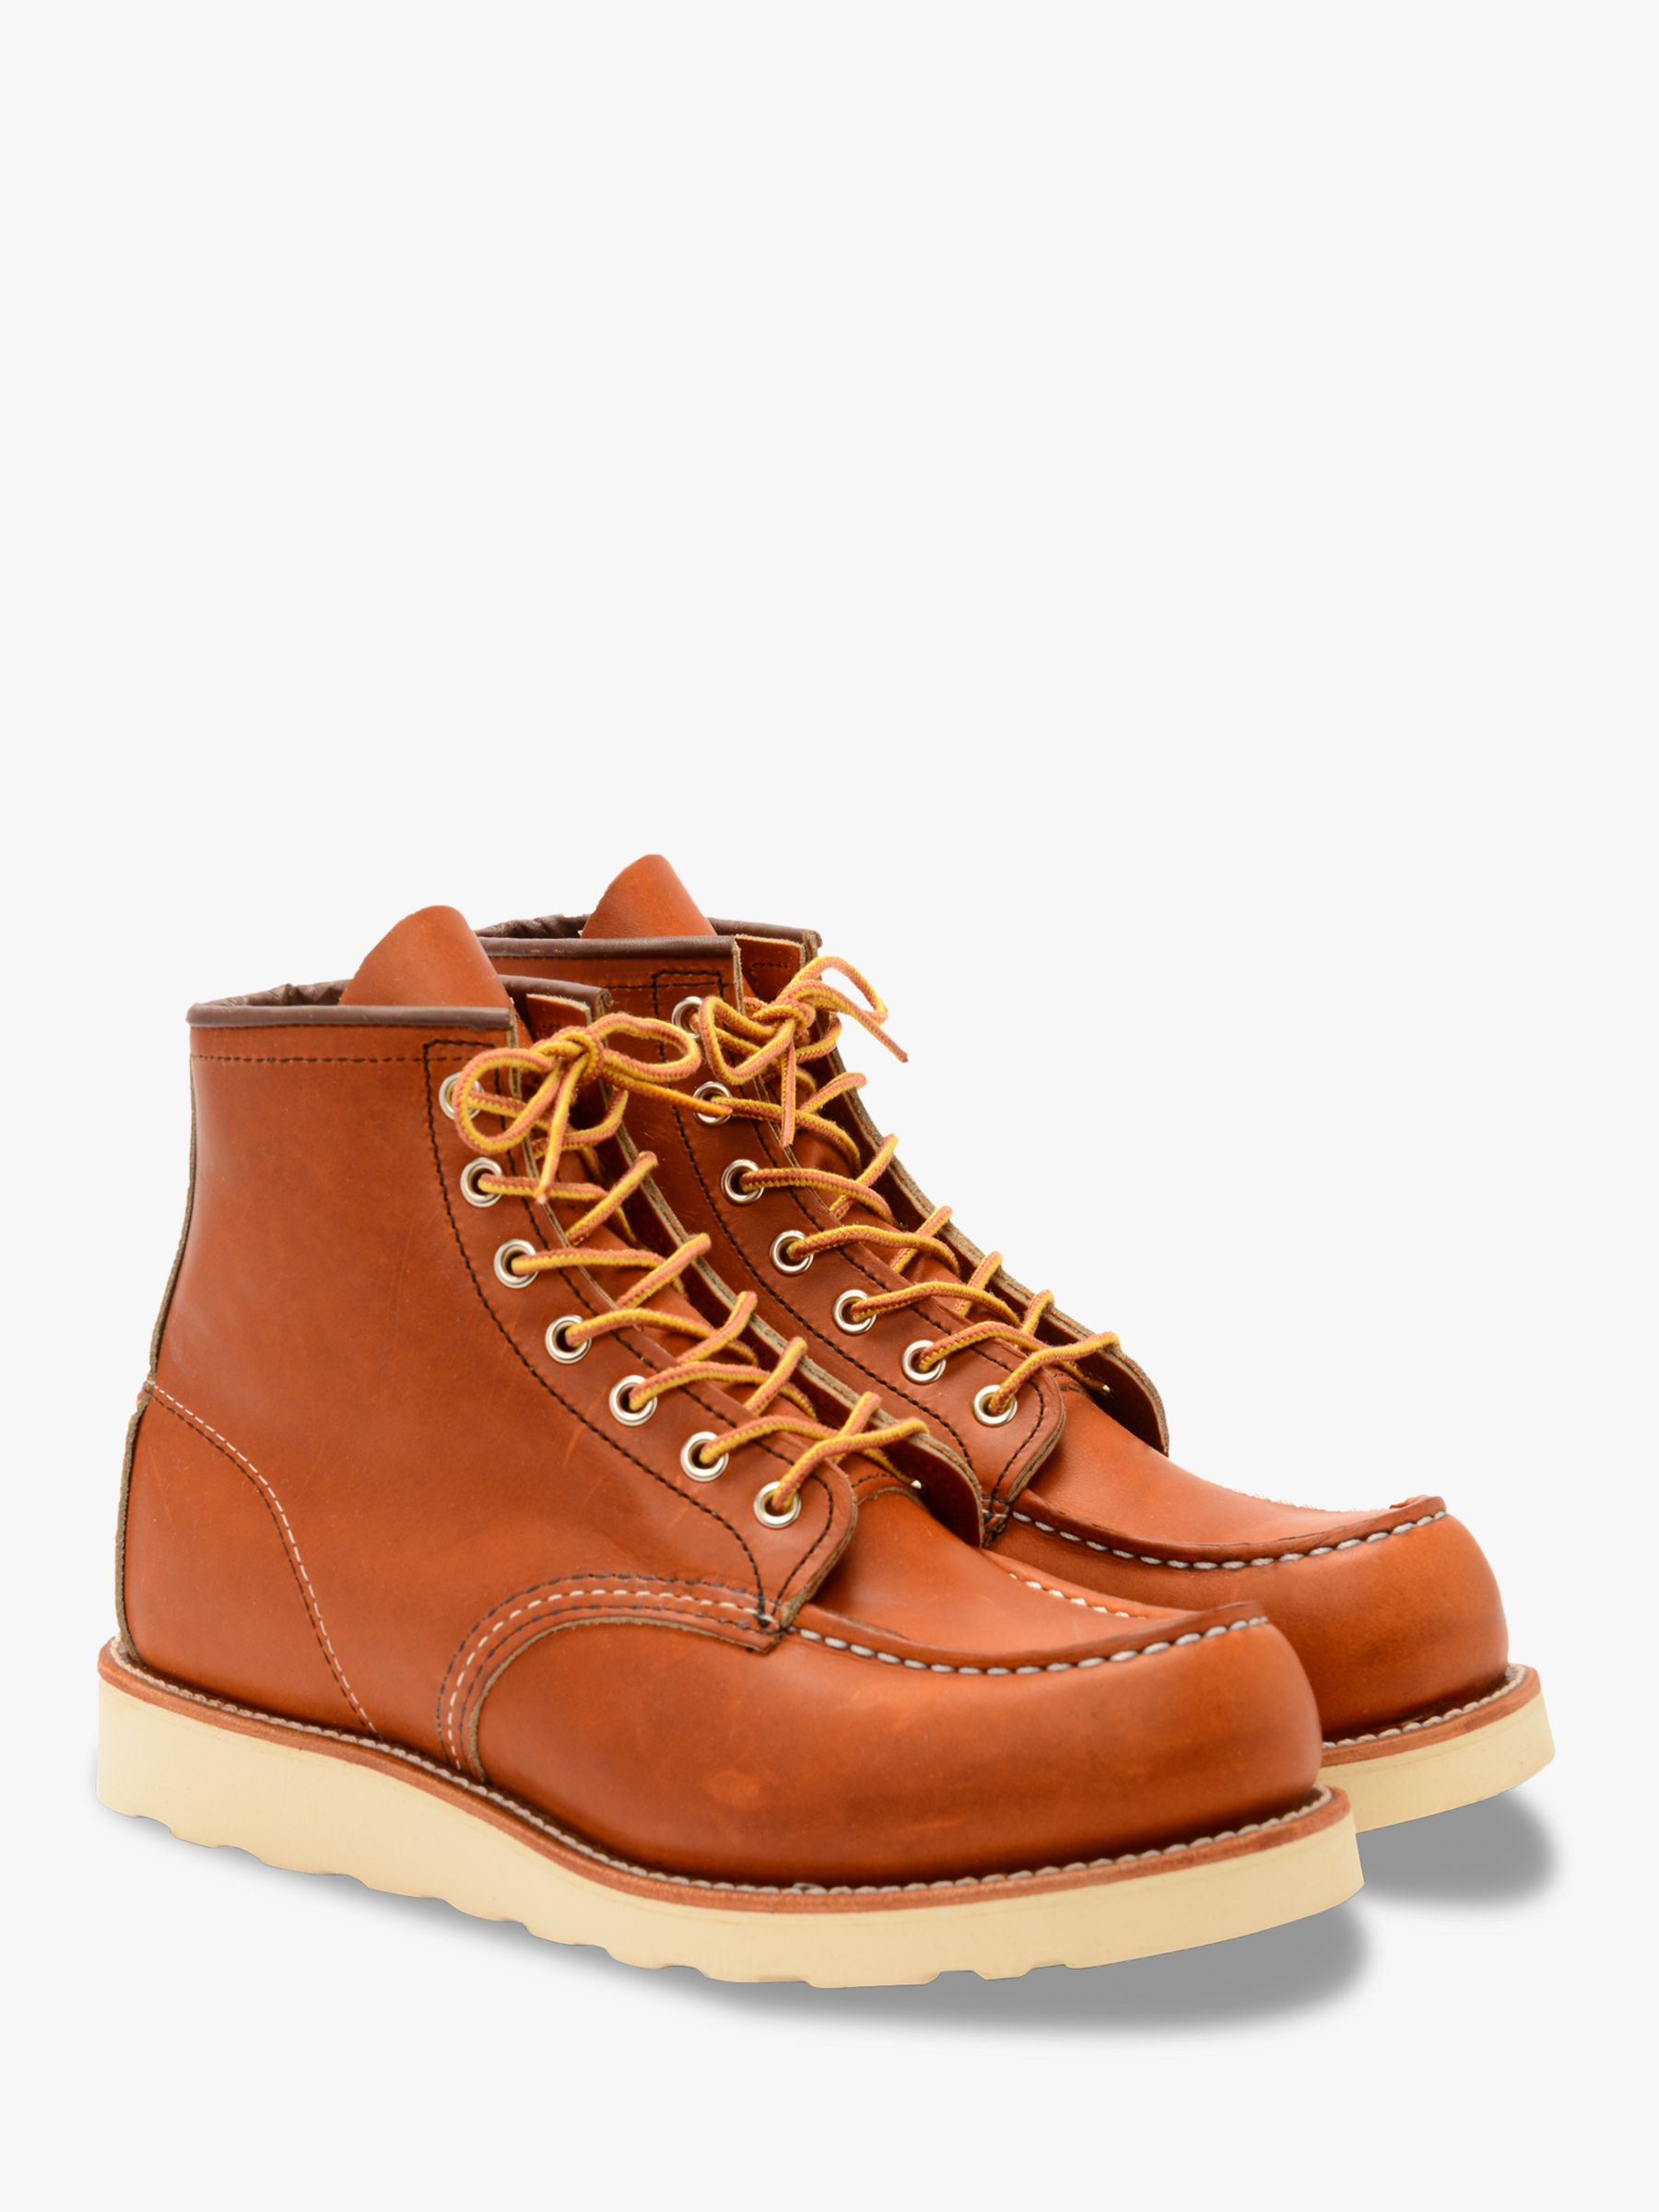 Red Wing Red Wing 875 Moc Toe Boot